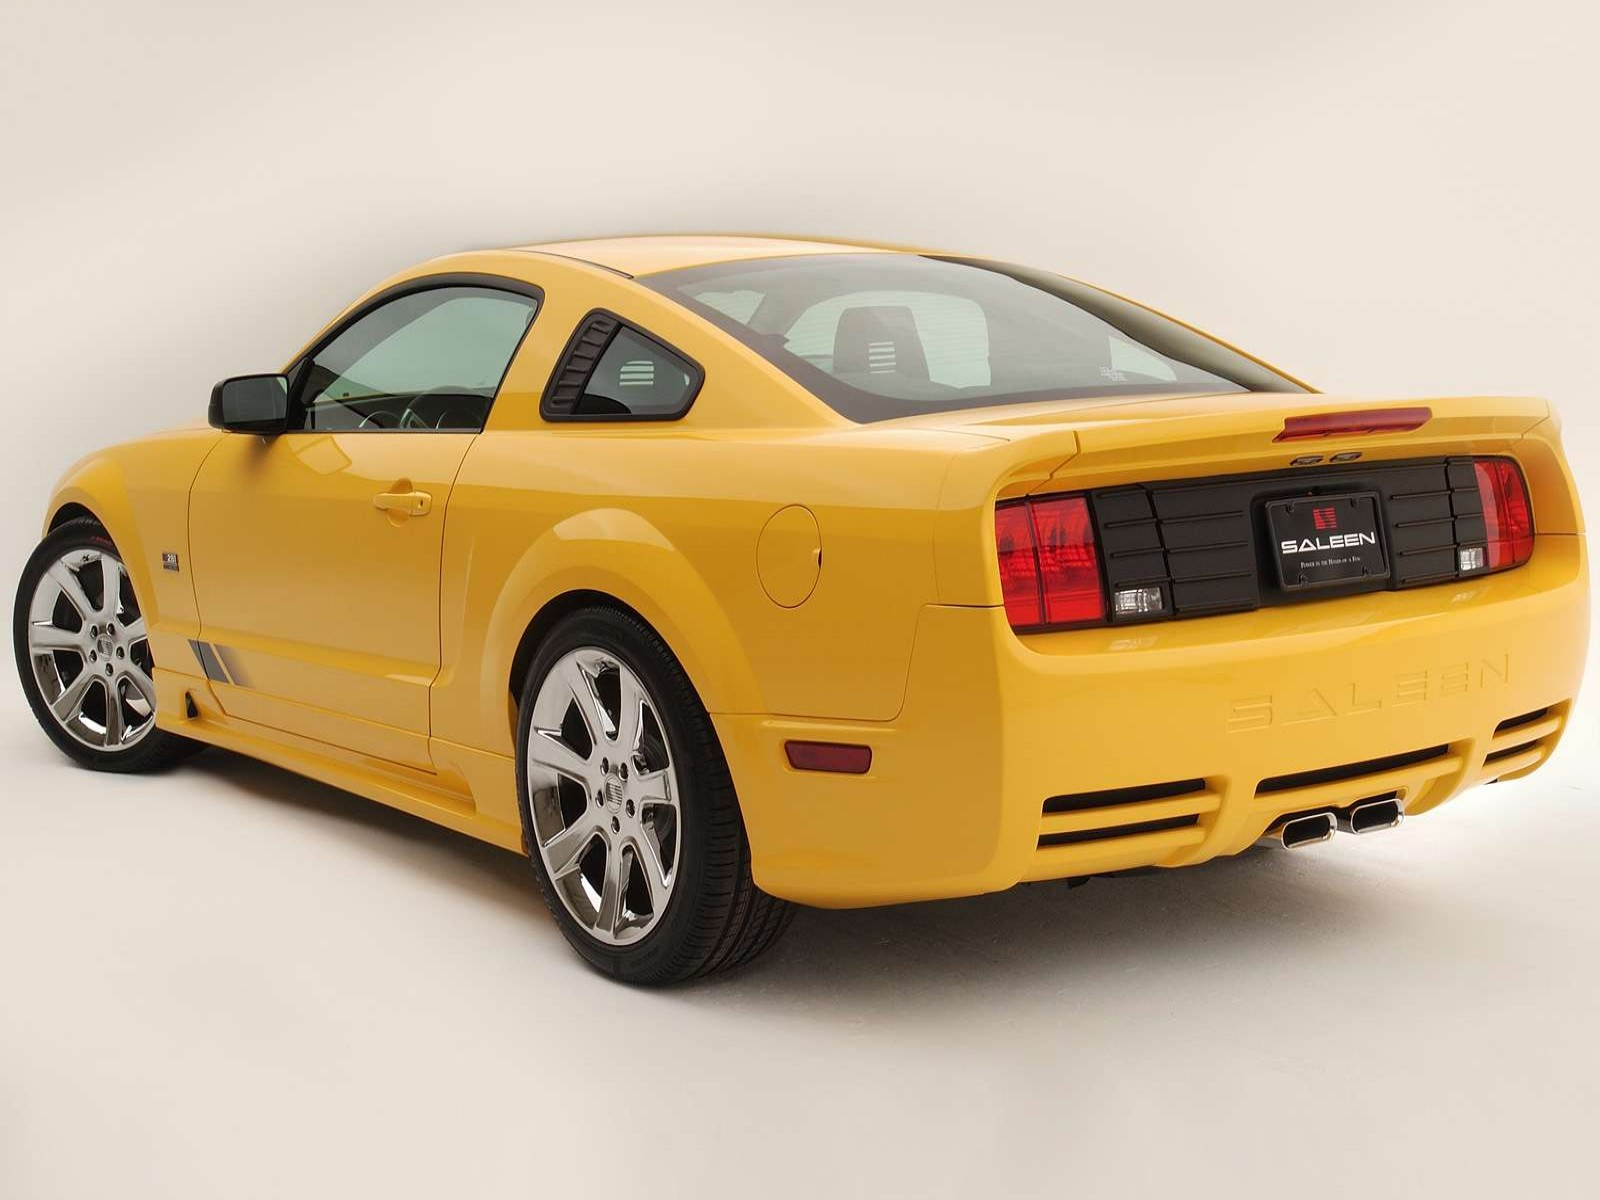 Car Pictures: Saleen Ford Mustang S281 3 Valve 2005